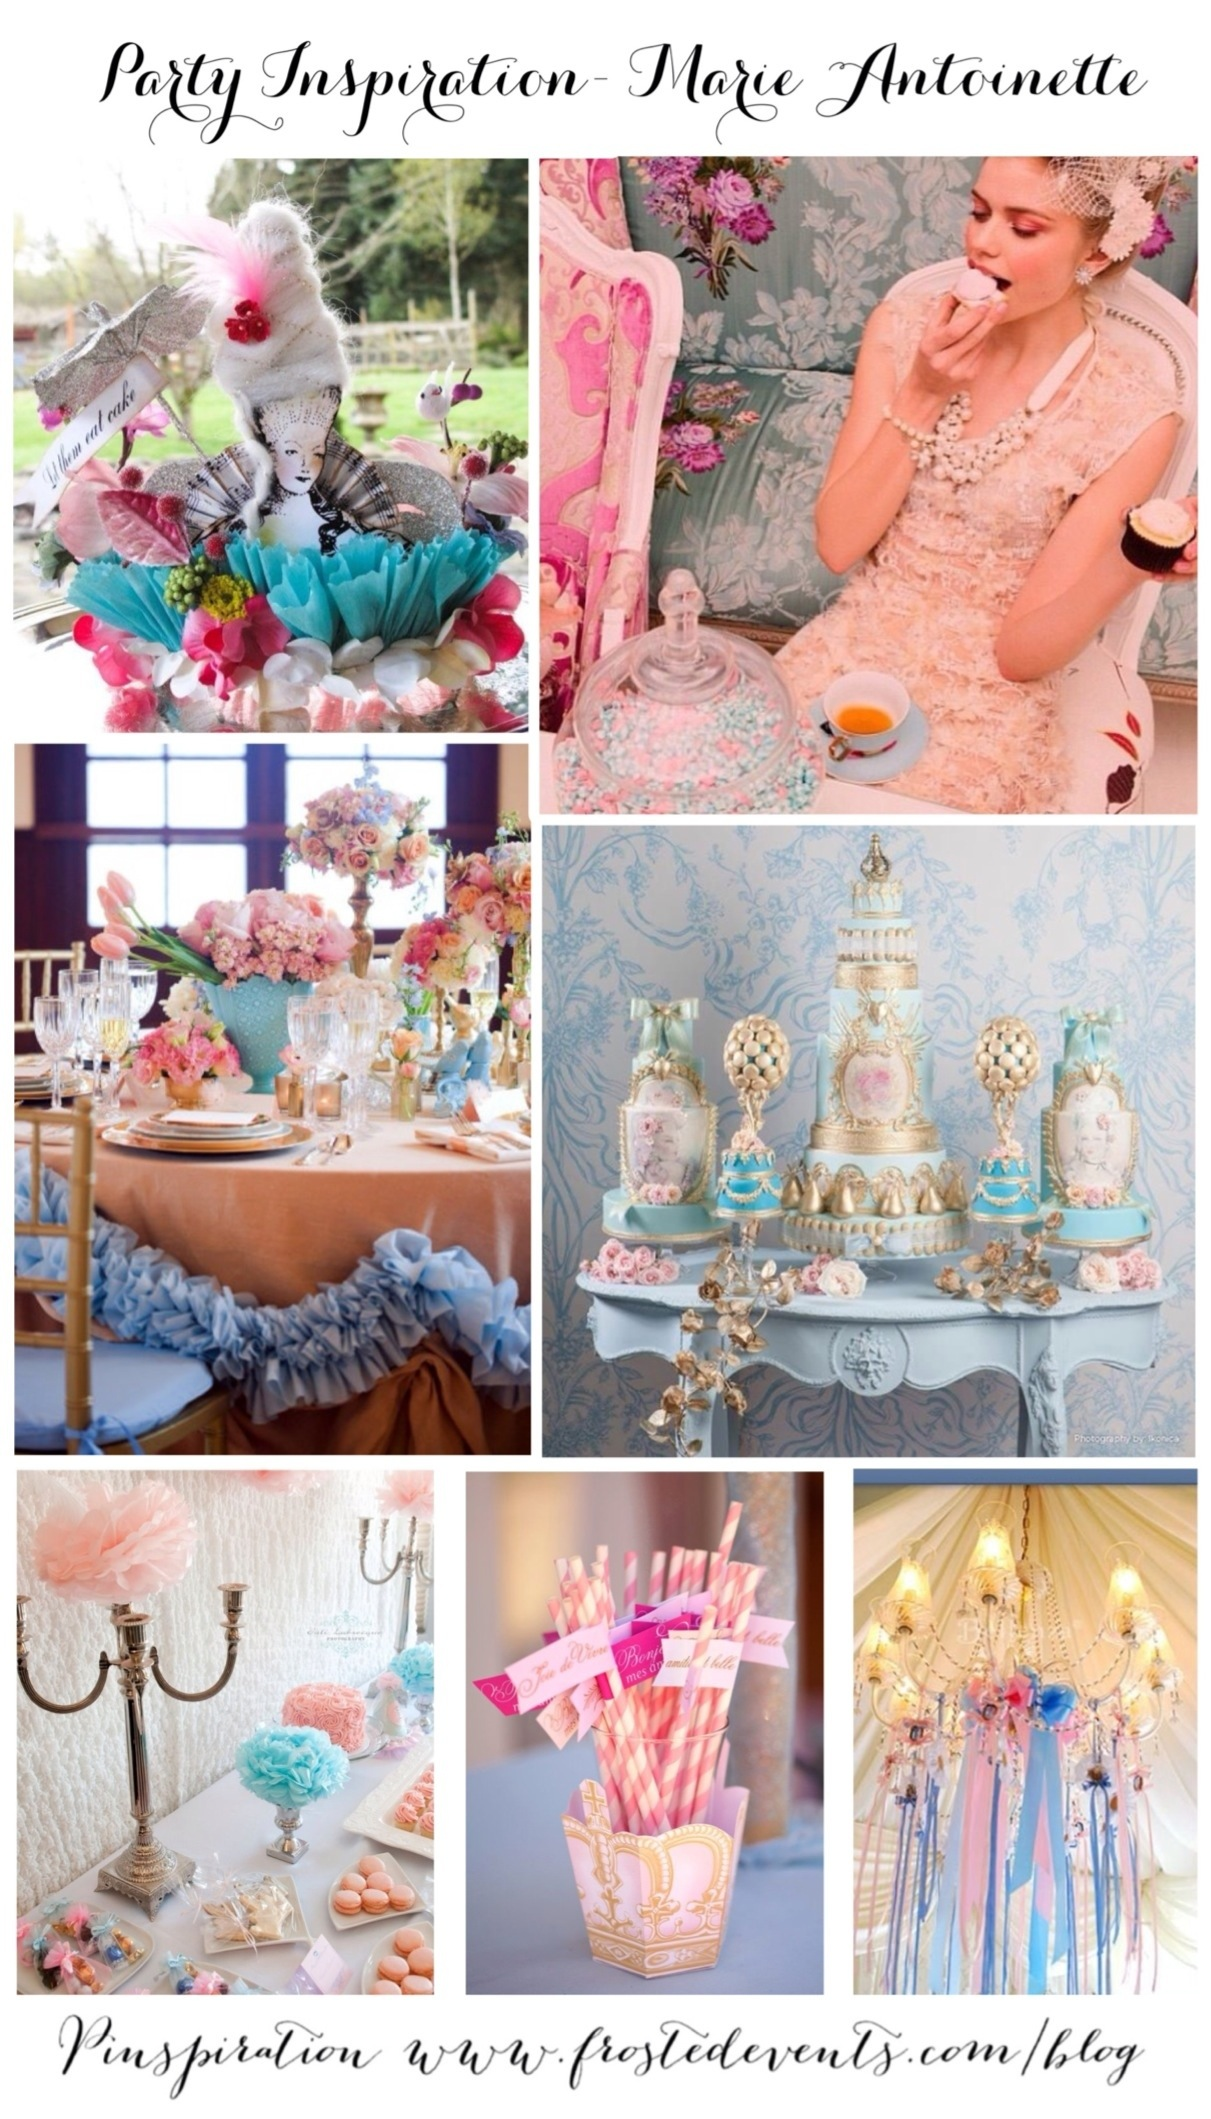 Marie Antoinette Theme Party Ideas & Inspiration www.frostedevents.com